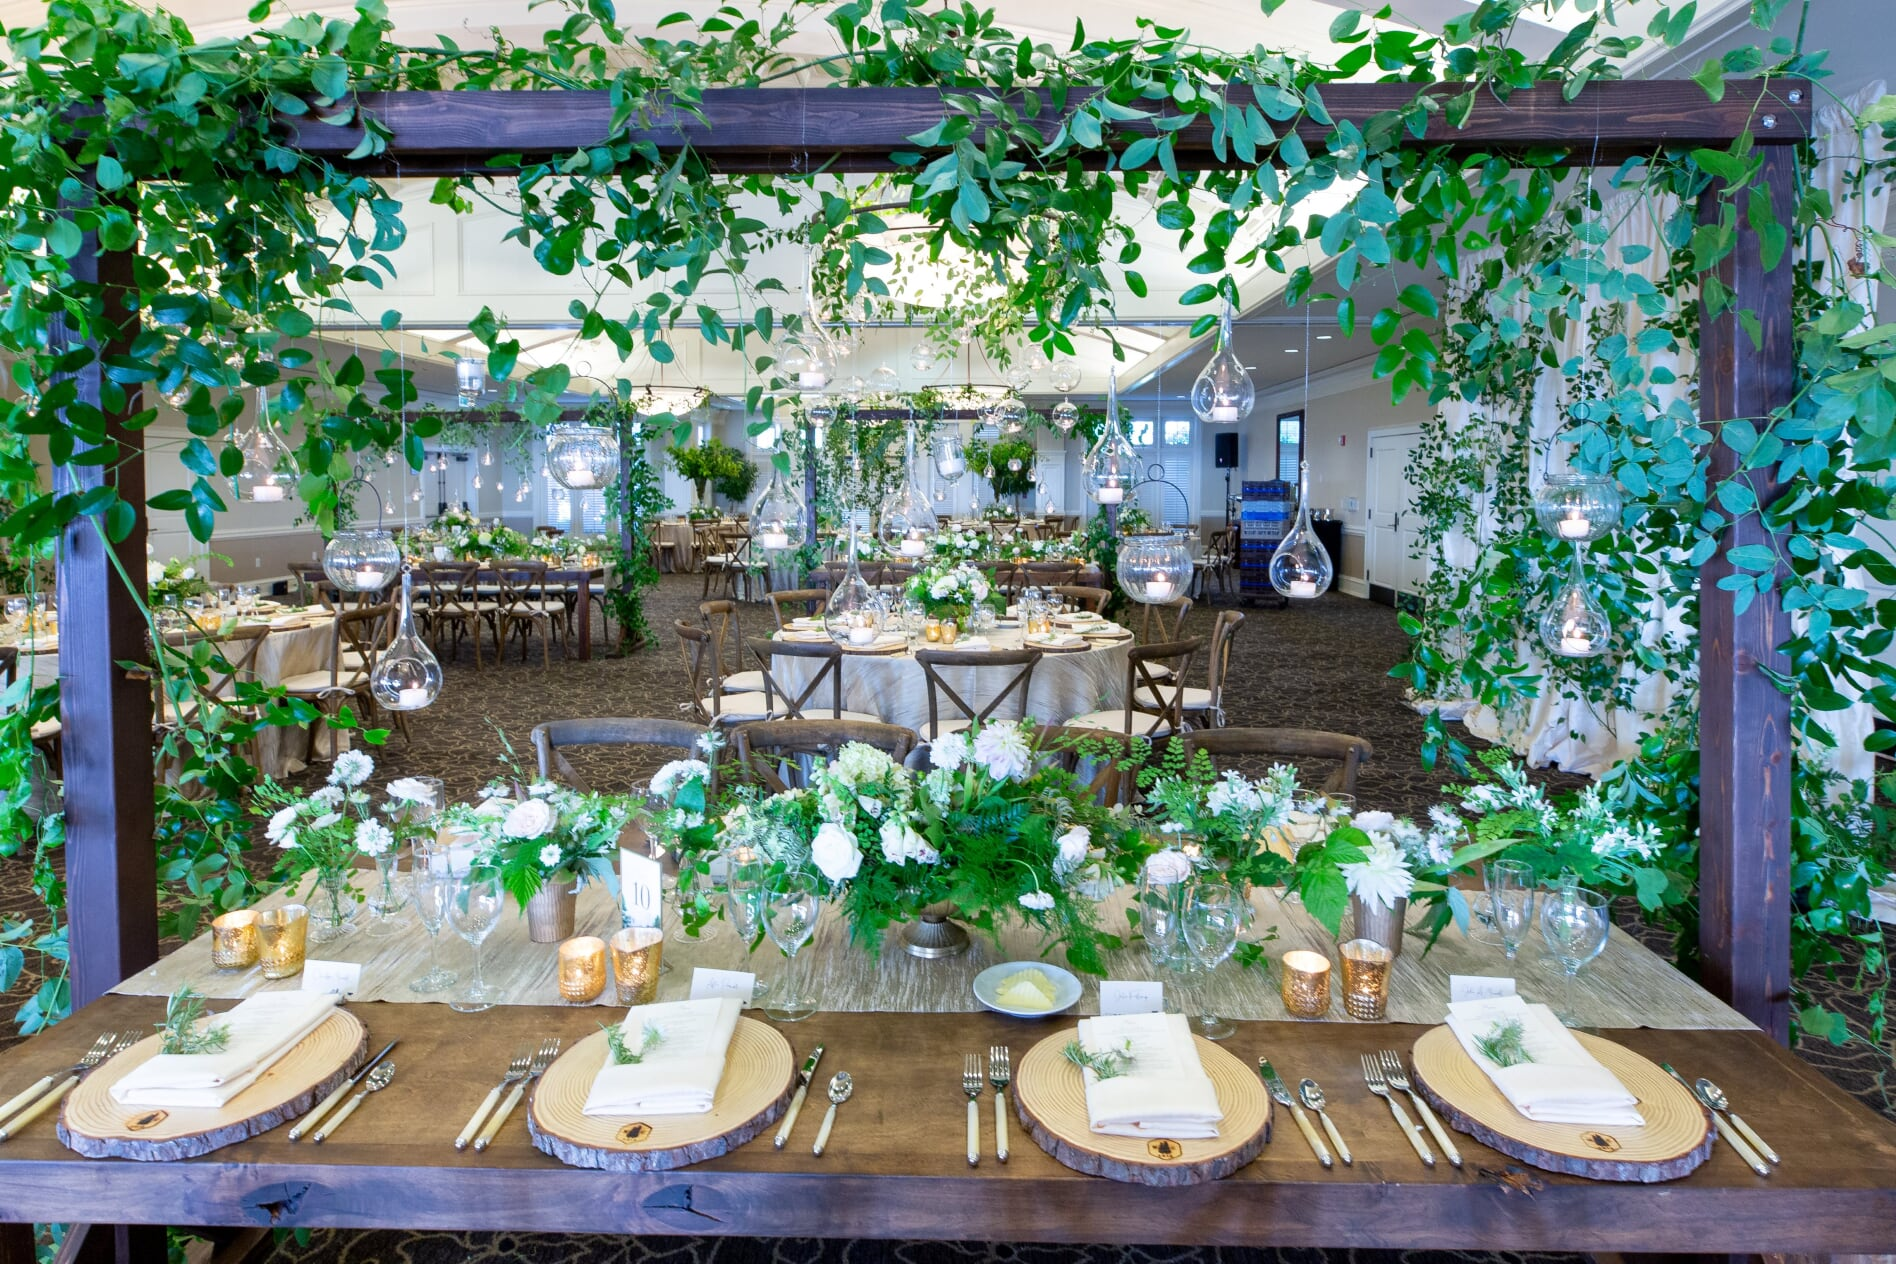 vines hanging over table with hanging votives, over long reception table